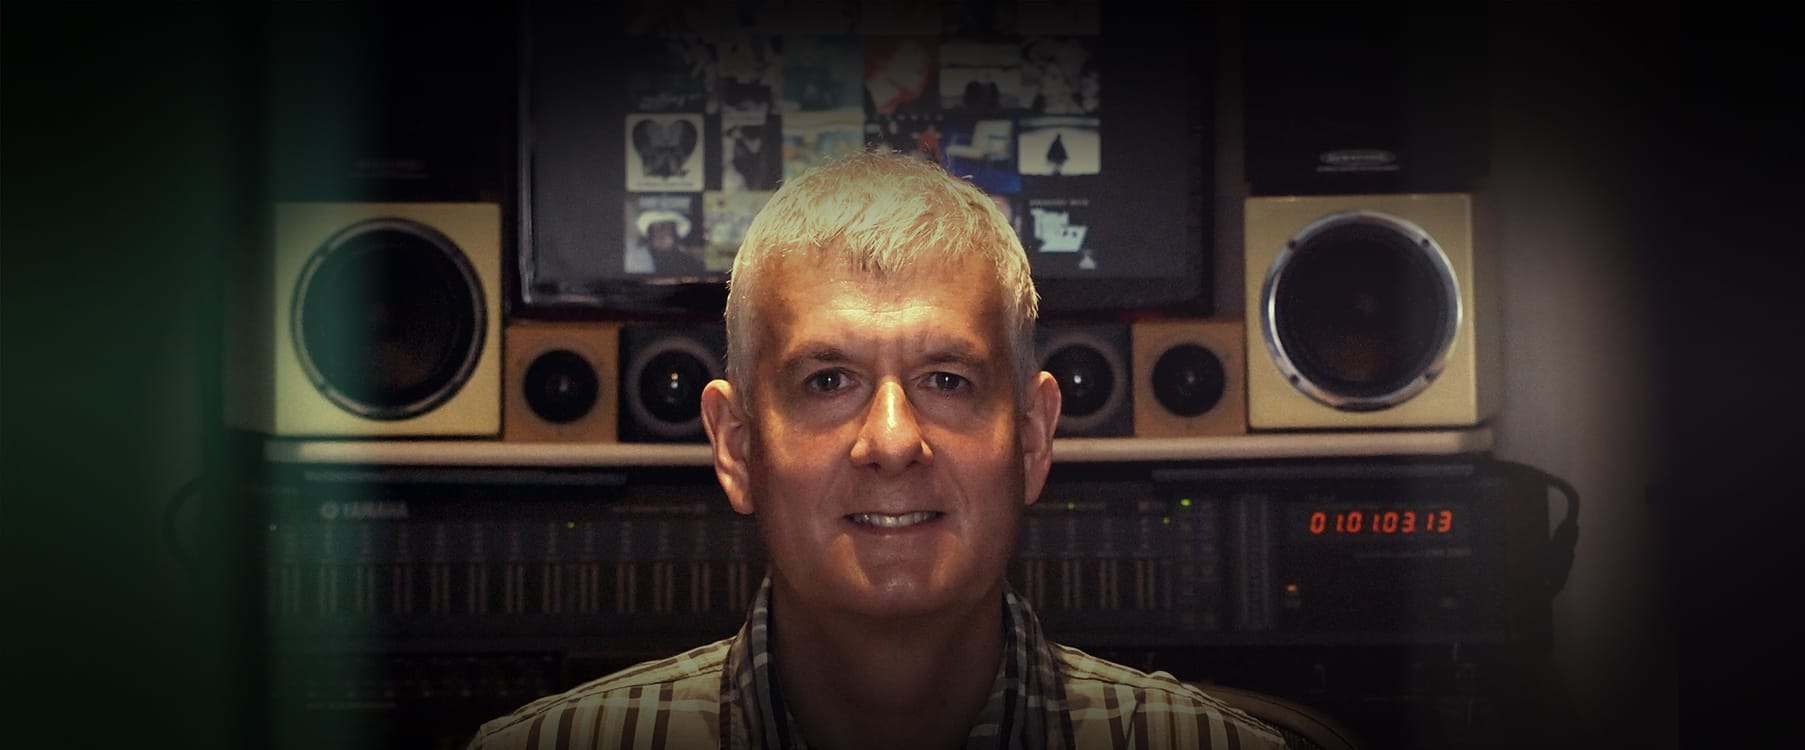 How to Capture the '60s Soul Sound with UAD Plug-Ins